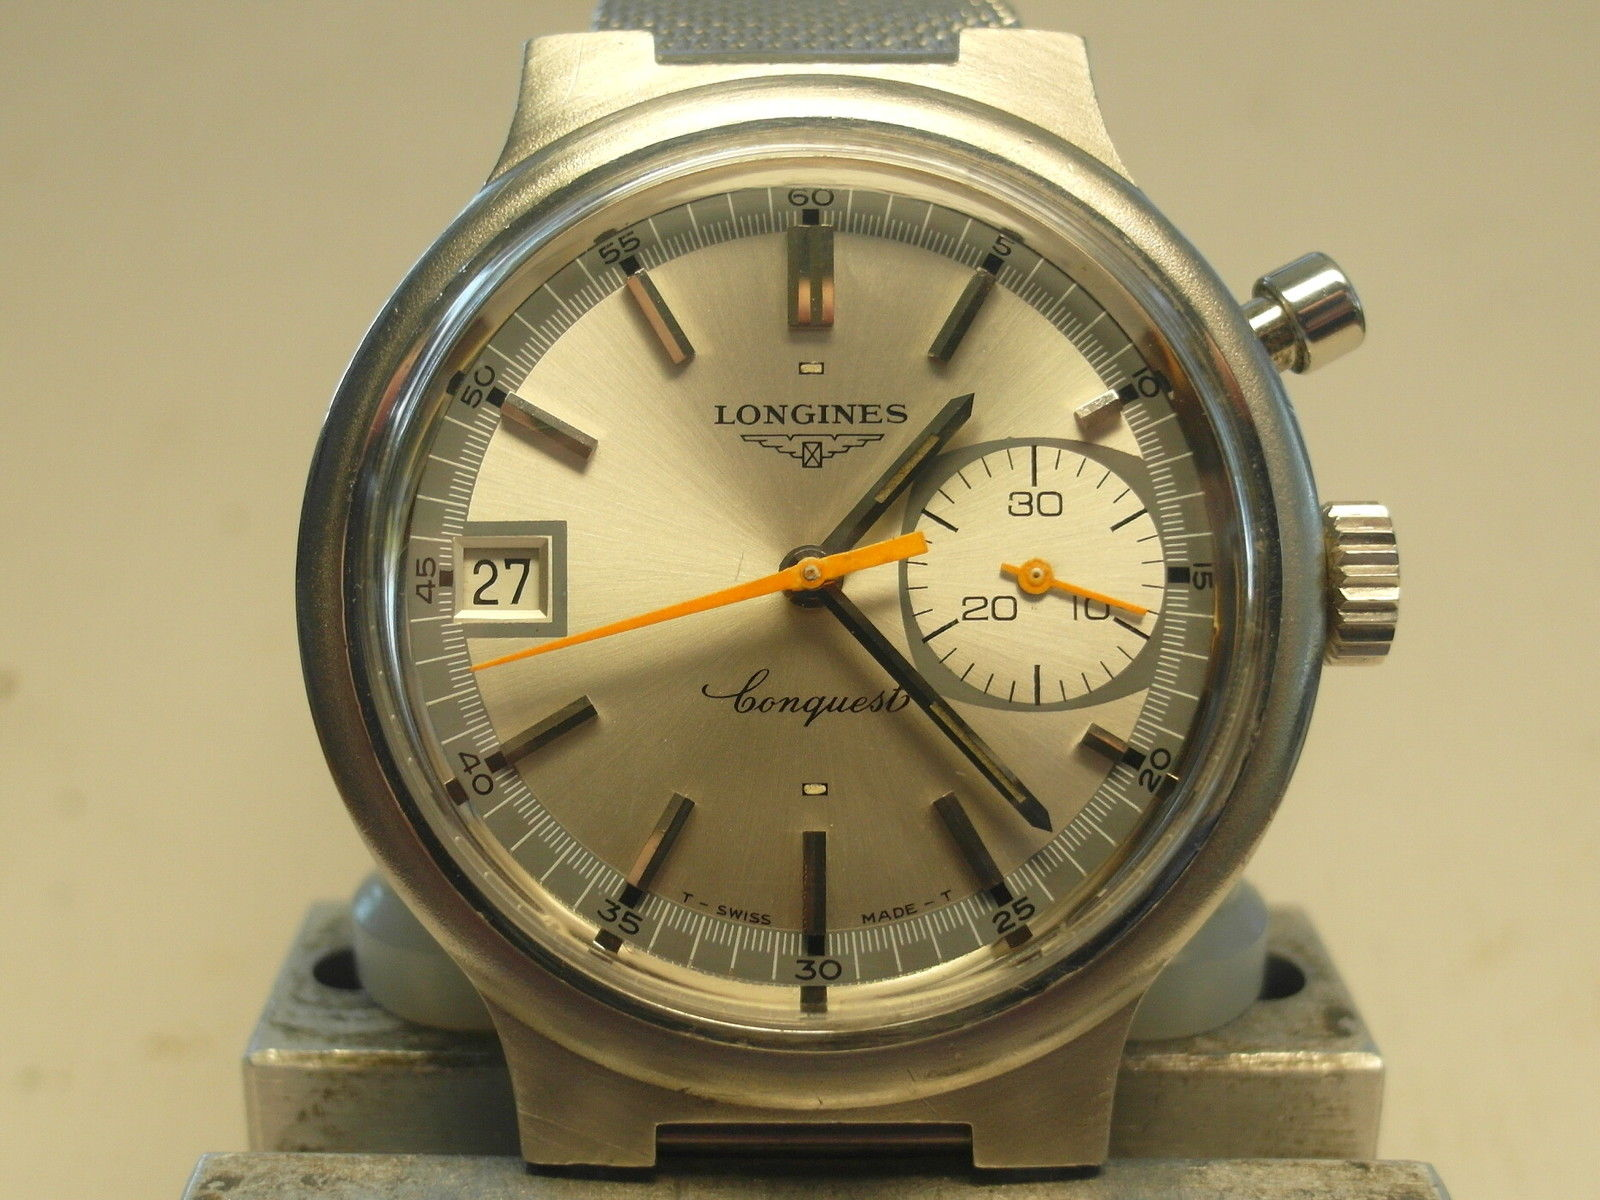 So clean, and made for timing the Olympics - how's that for tool watch?